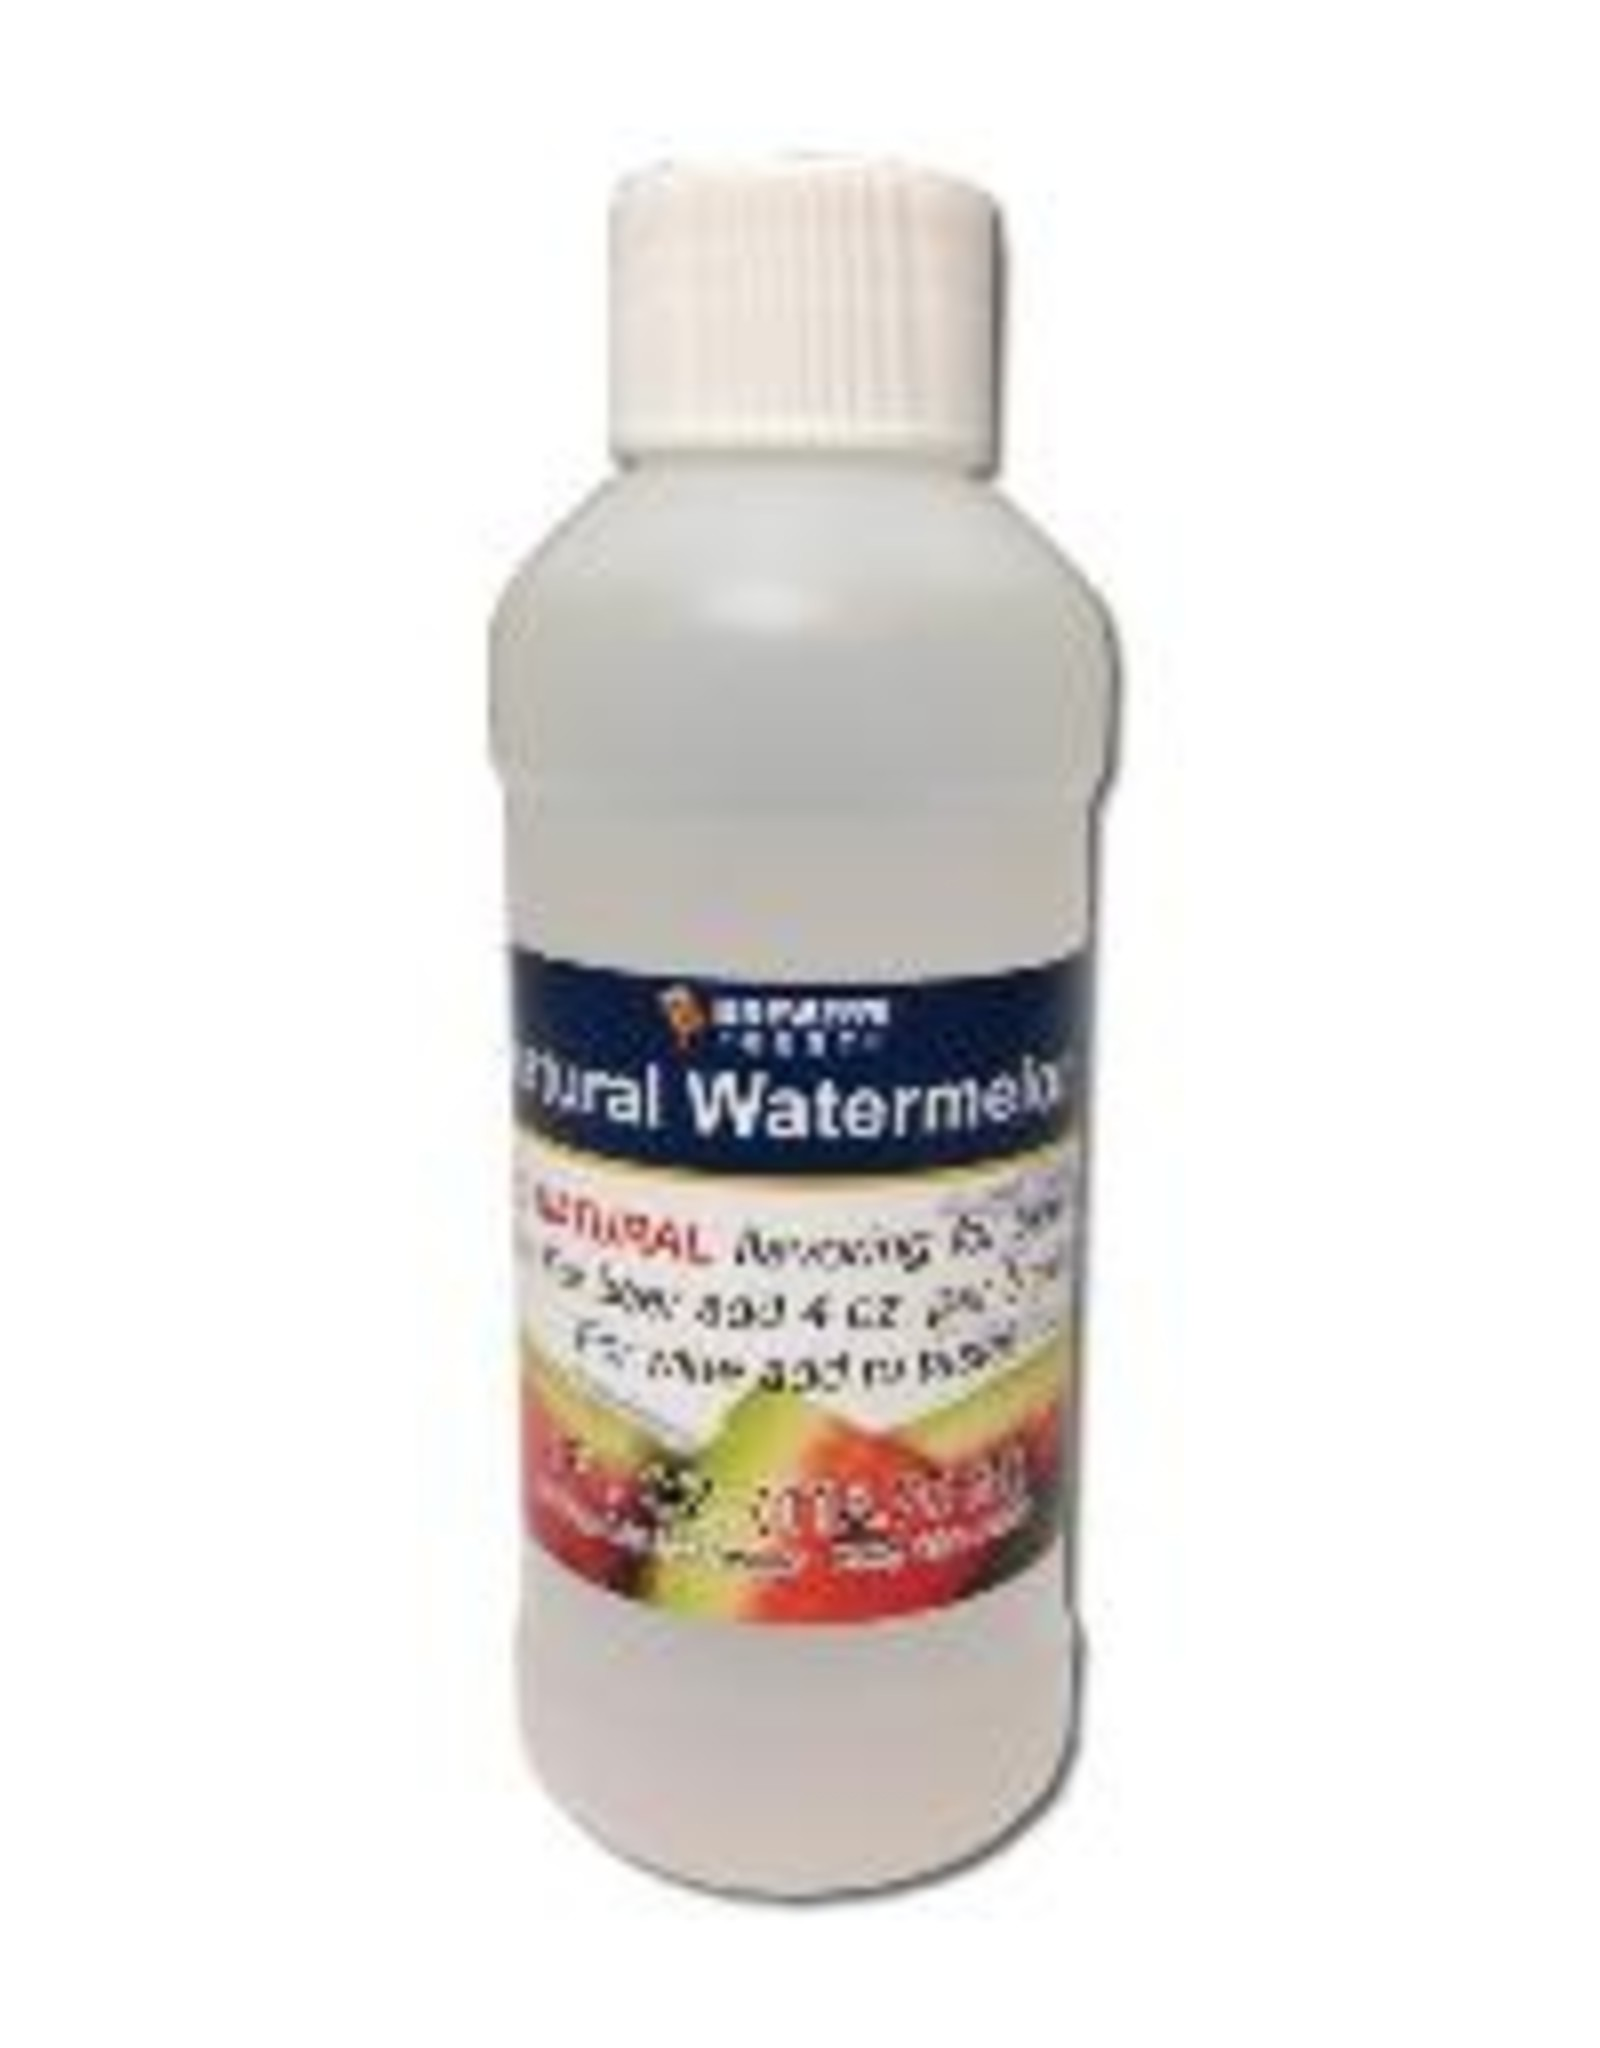 BREWERS BEST NATURAL WATERMELON FLAVORING EXTRACT 4 OZ